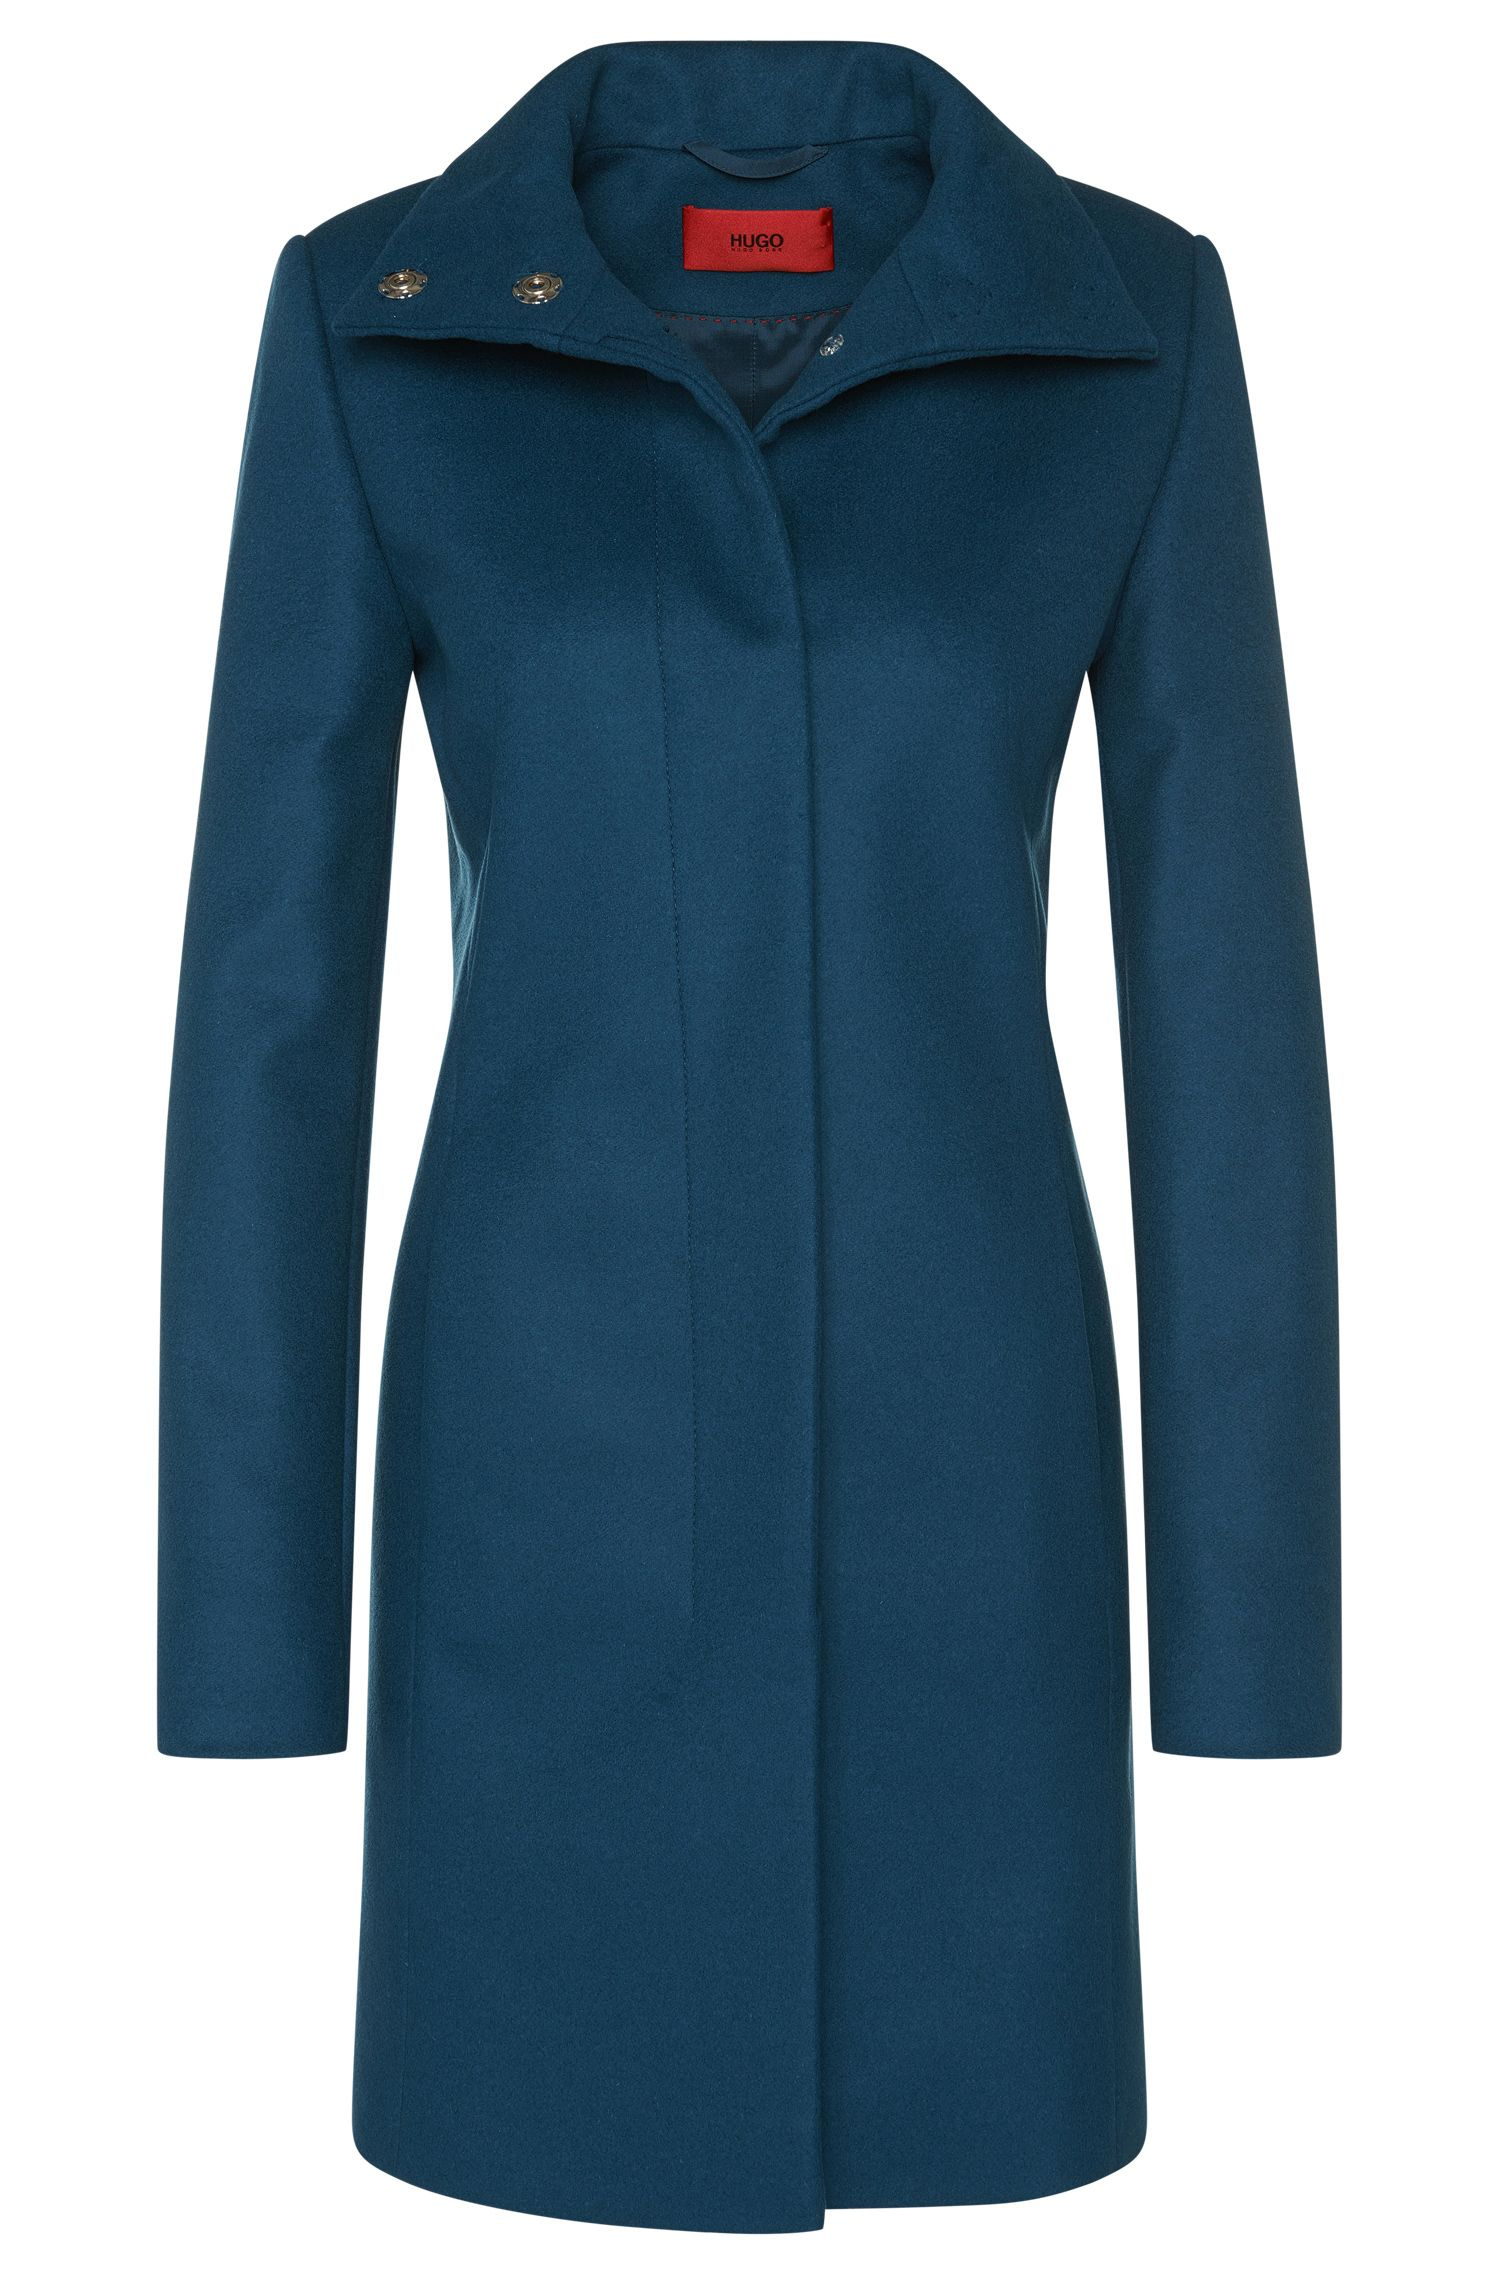 Wool coat 'Malu' in new wool blend